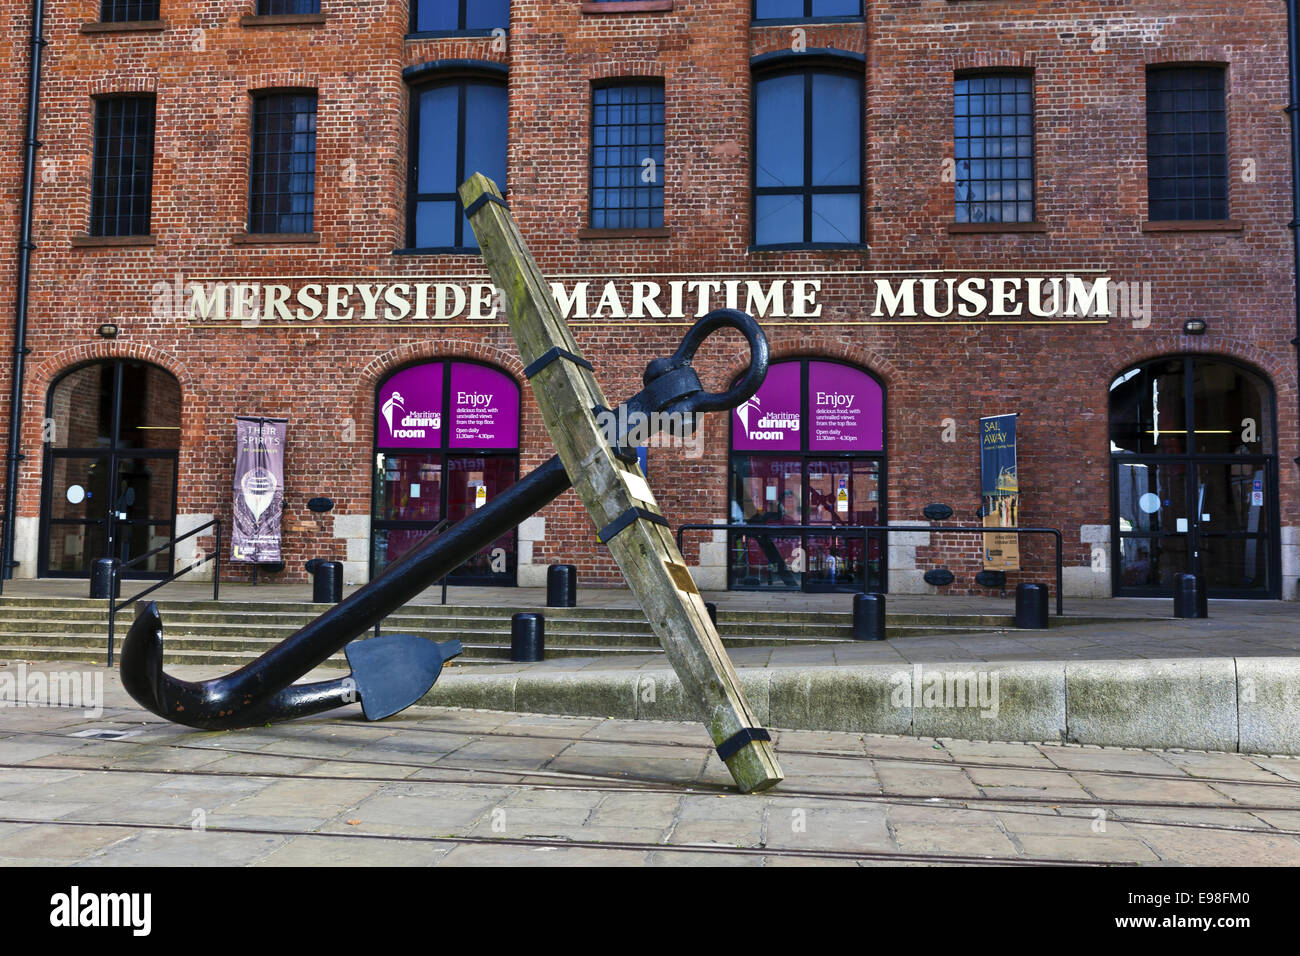 Merseyside Maritime Museum in the Albert Dock on the banks of the River Mersey. - Stock Image